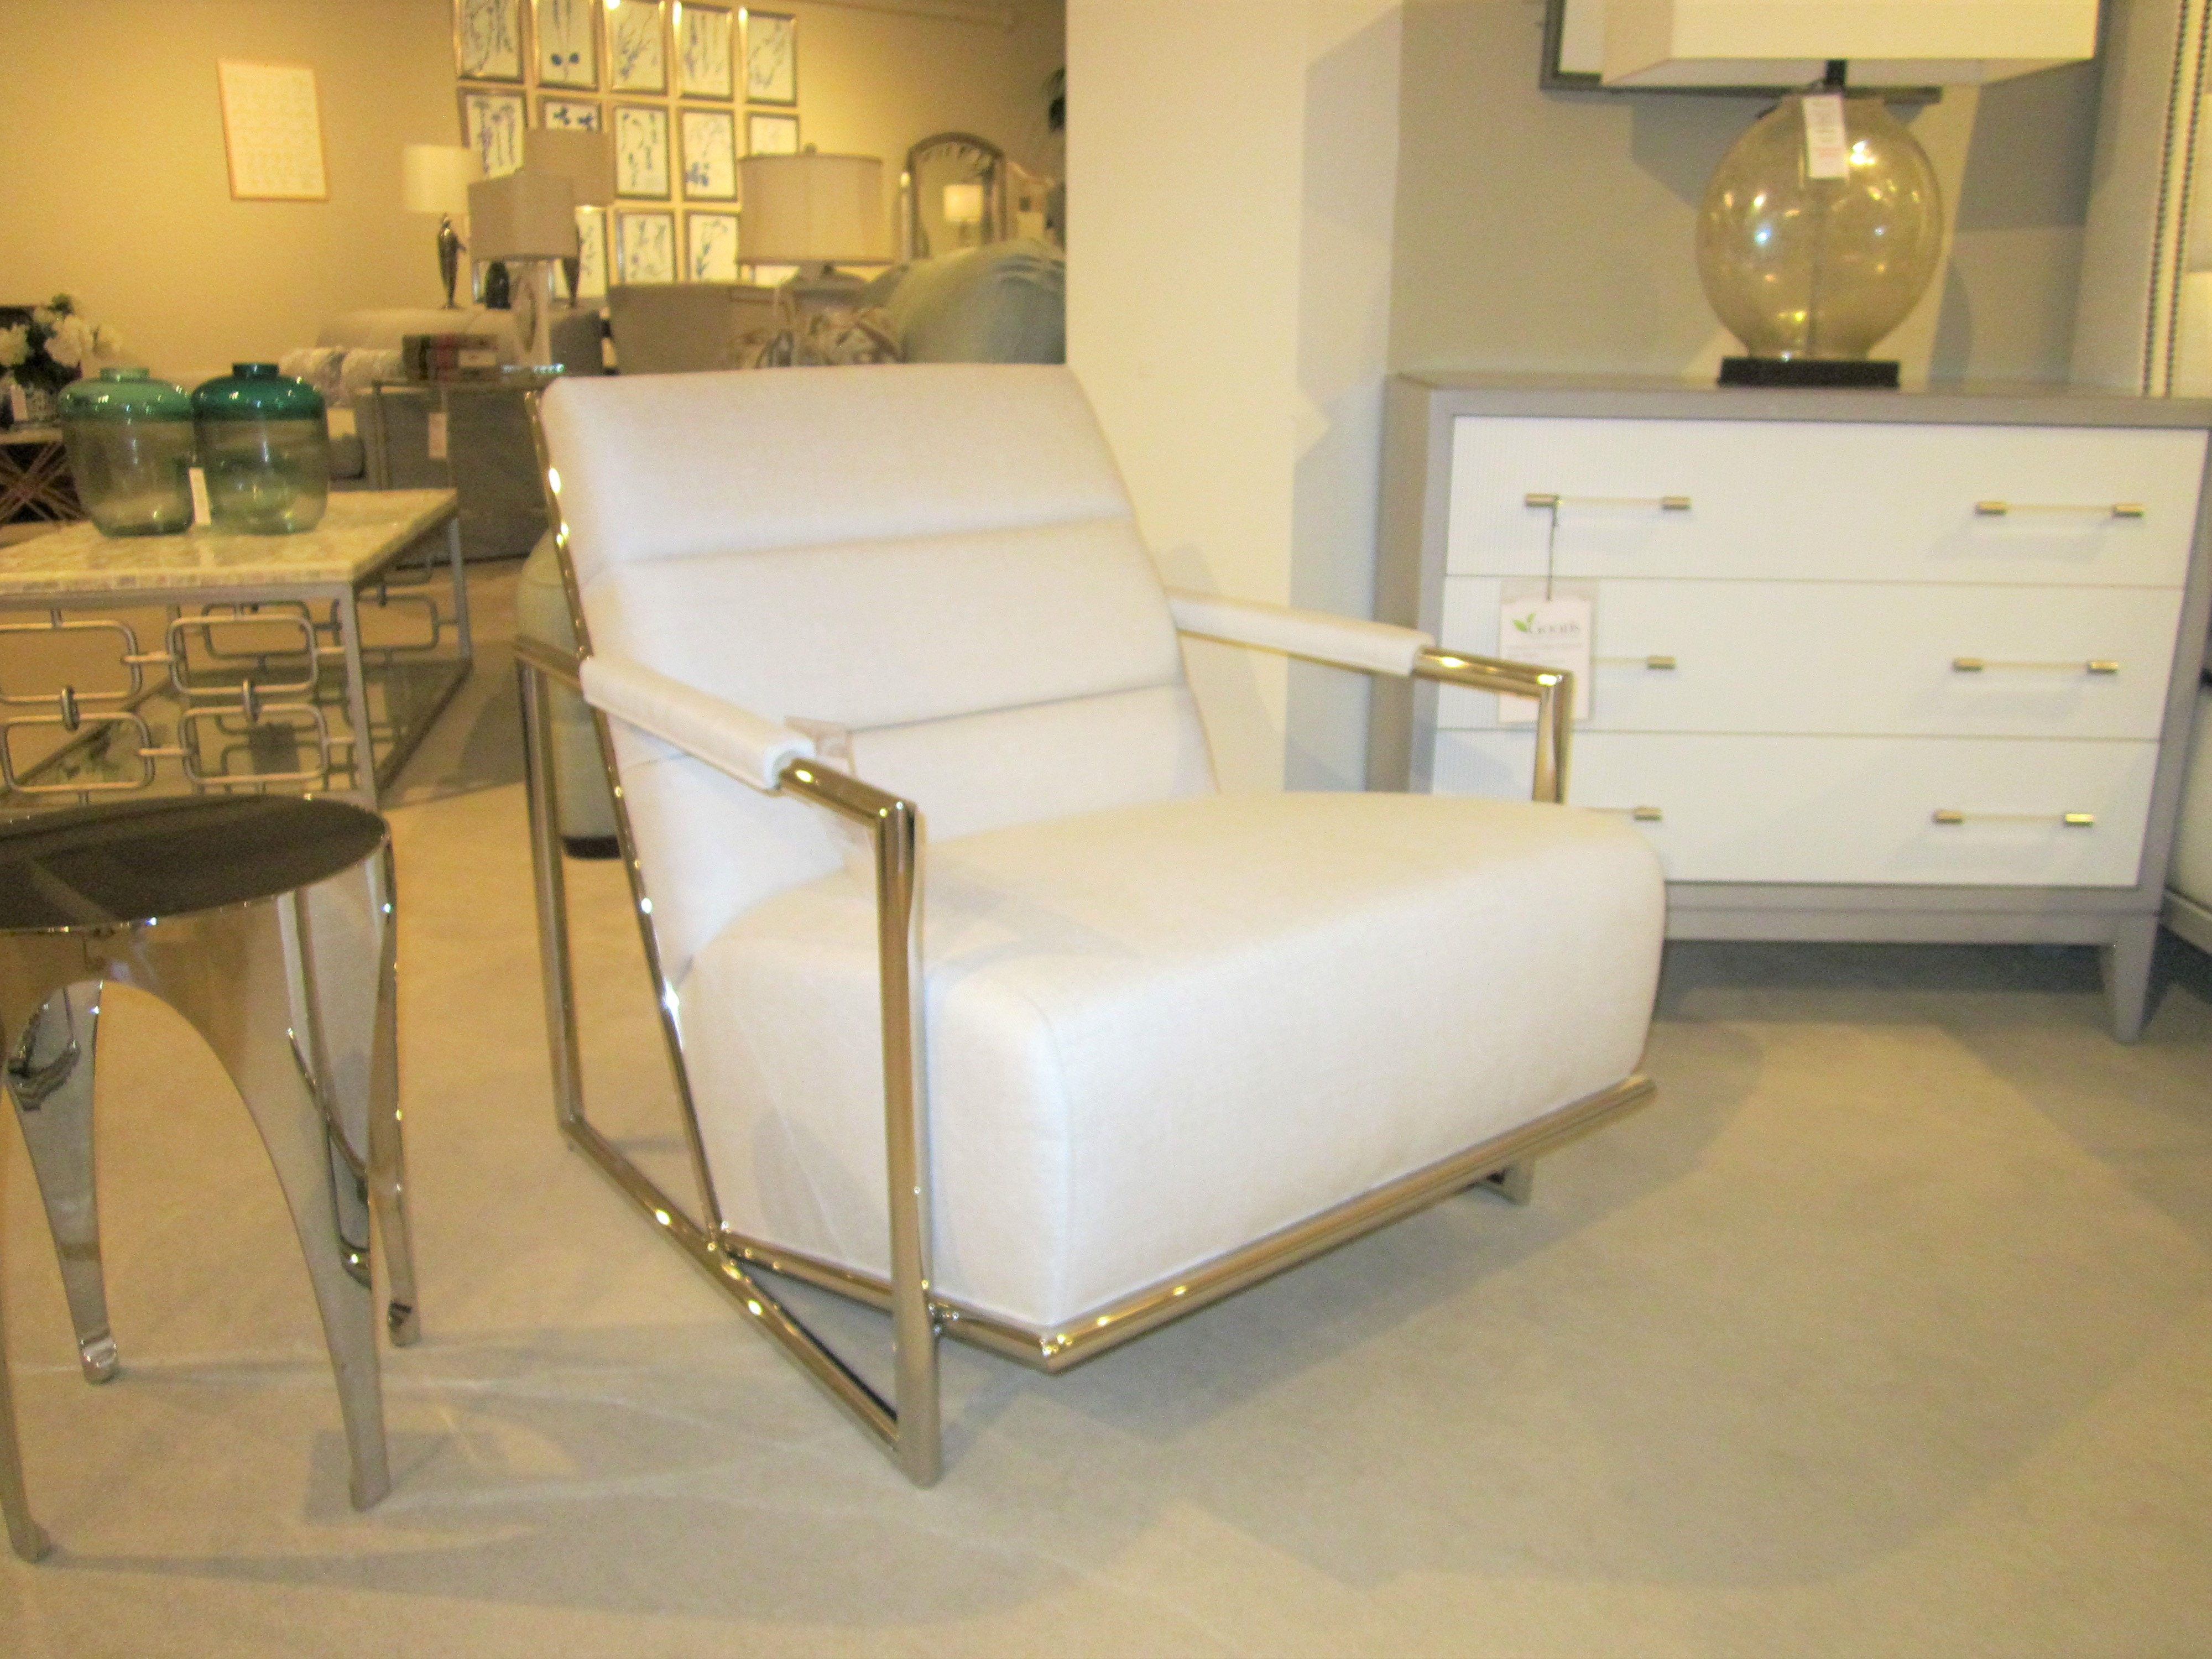 Charmant Vanguard Furniture Factory Outlet By Goodu0027s Living Room Michael Weiss  Mccartney Chair (SKU: W796 Ch Clearance 2) Is Available At Hickory Furniture  Mart In ...